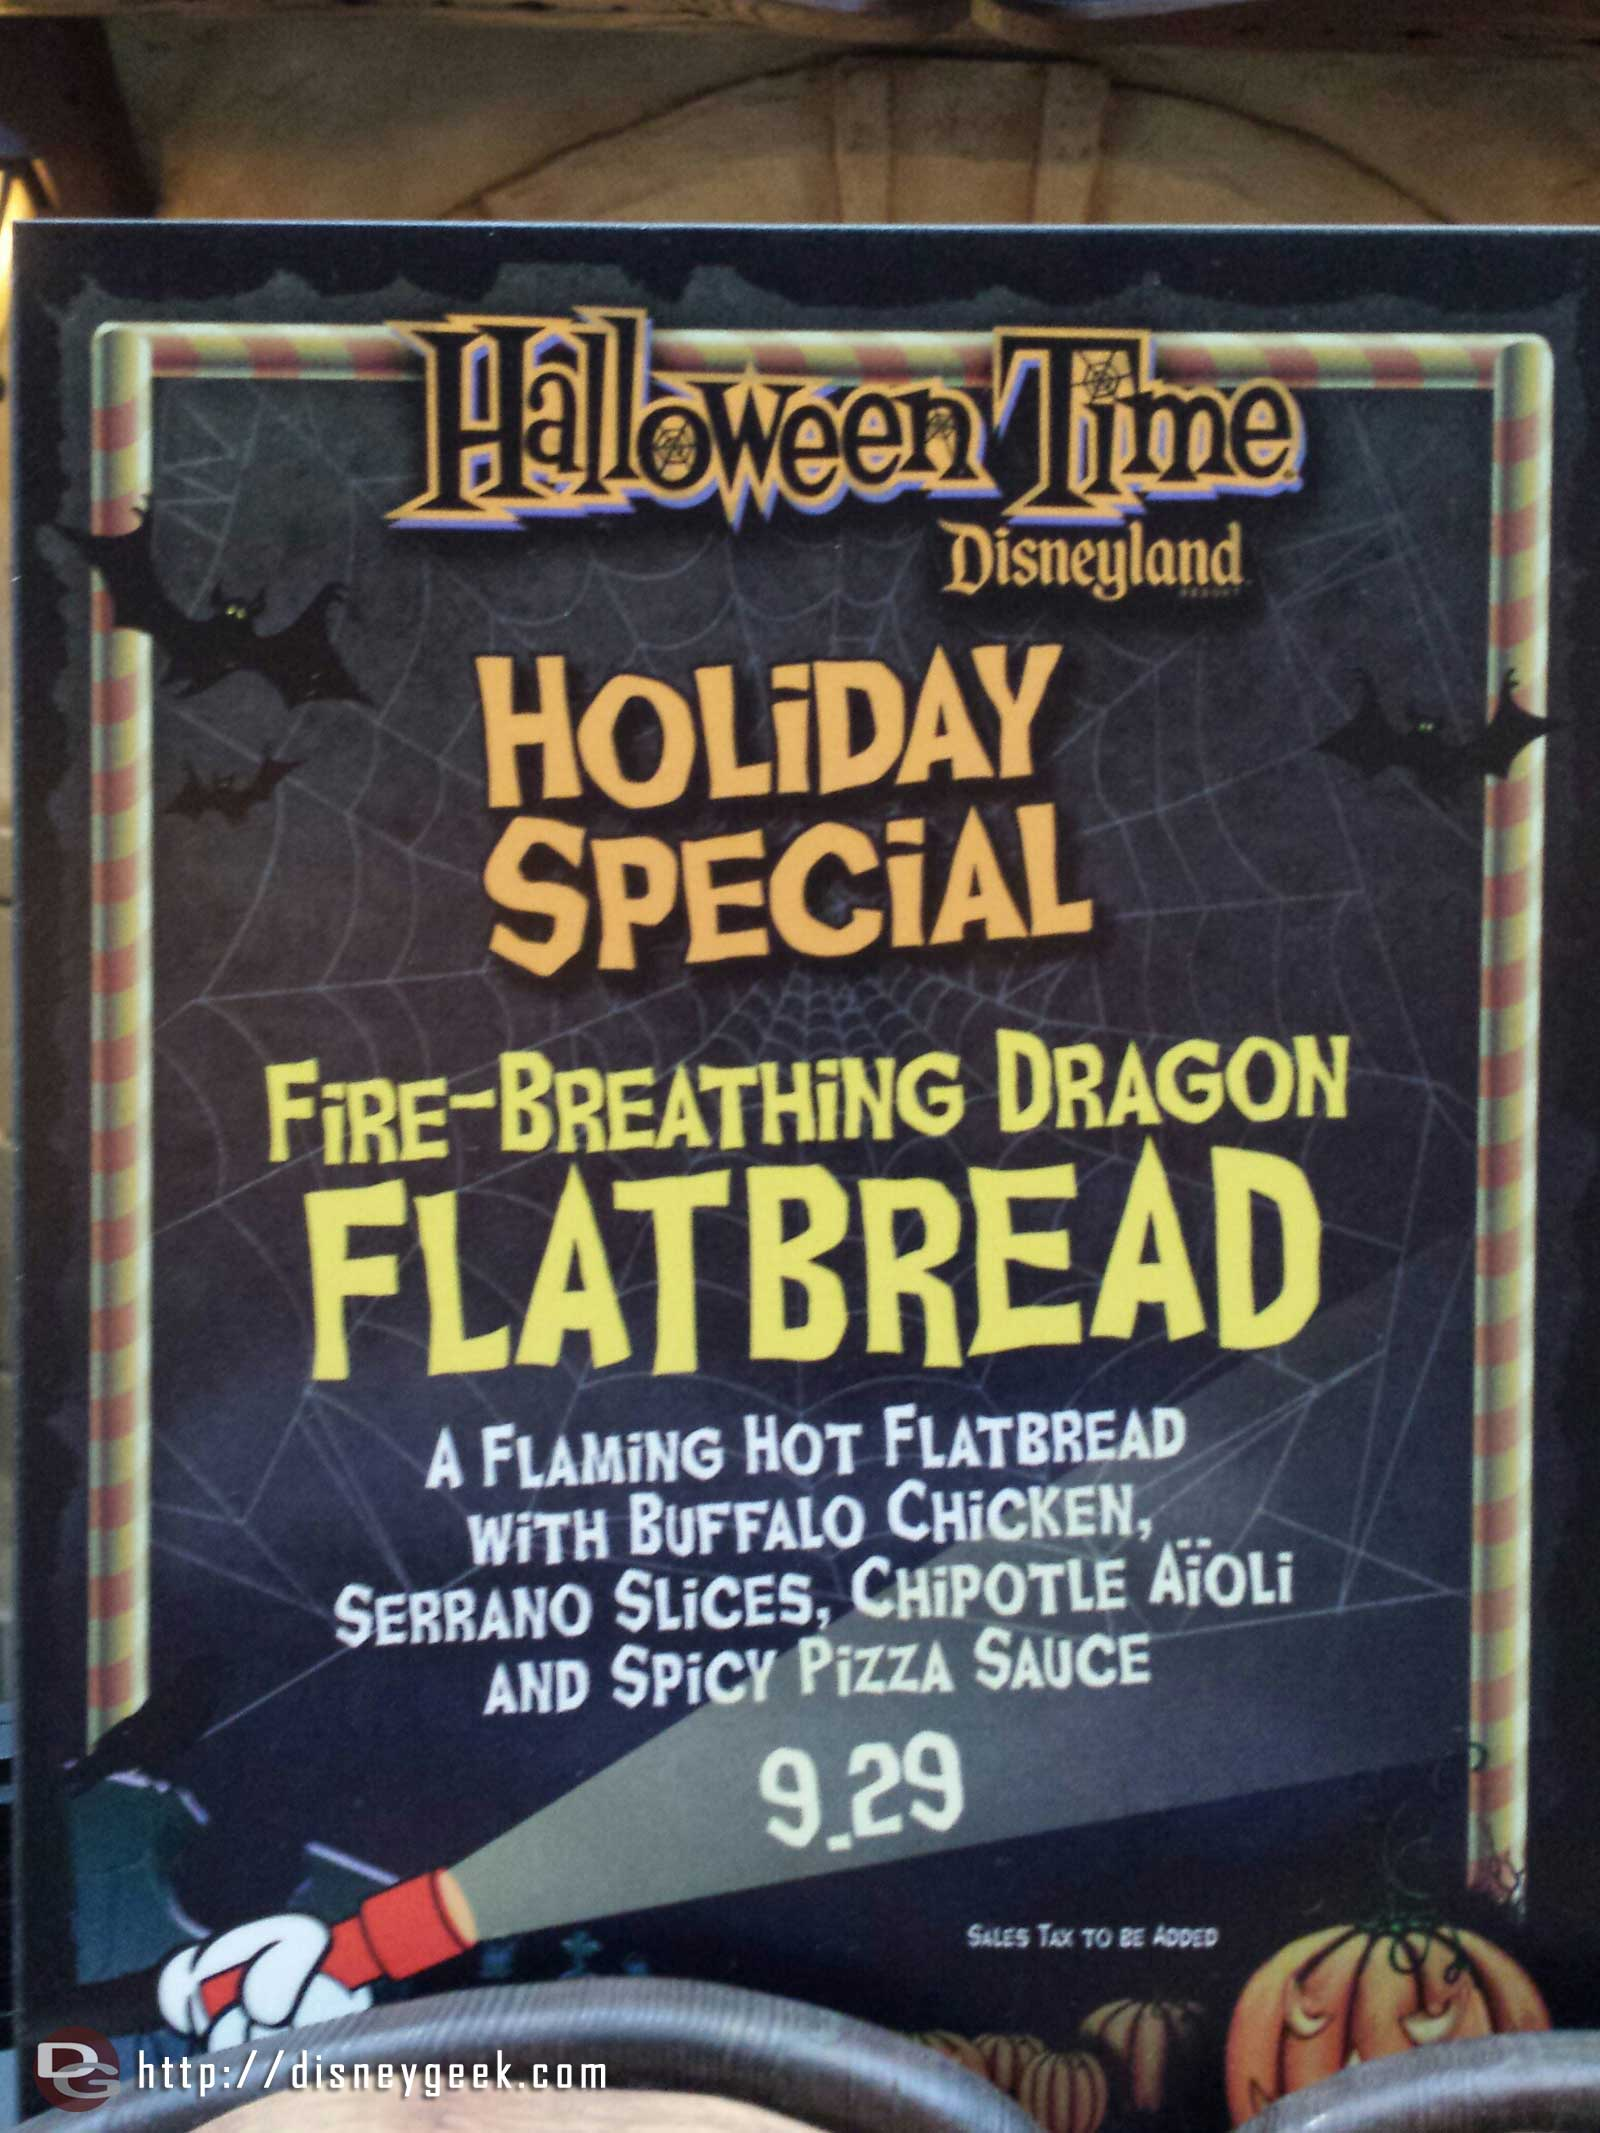 The HalloweenTime offering at the Village Haus Fire-Breathing Dragon Flatbread (sign)